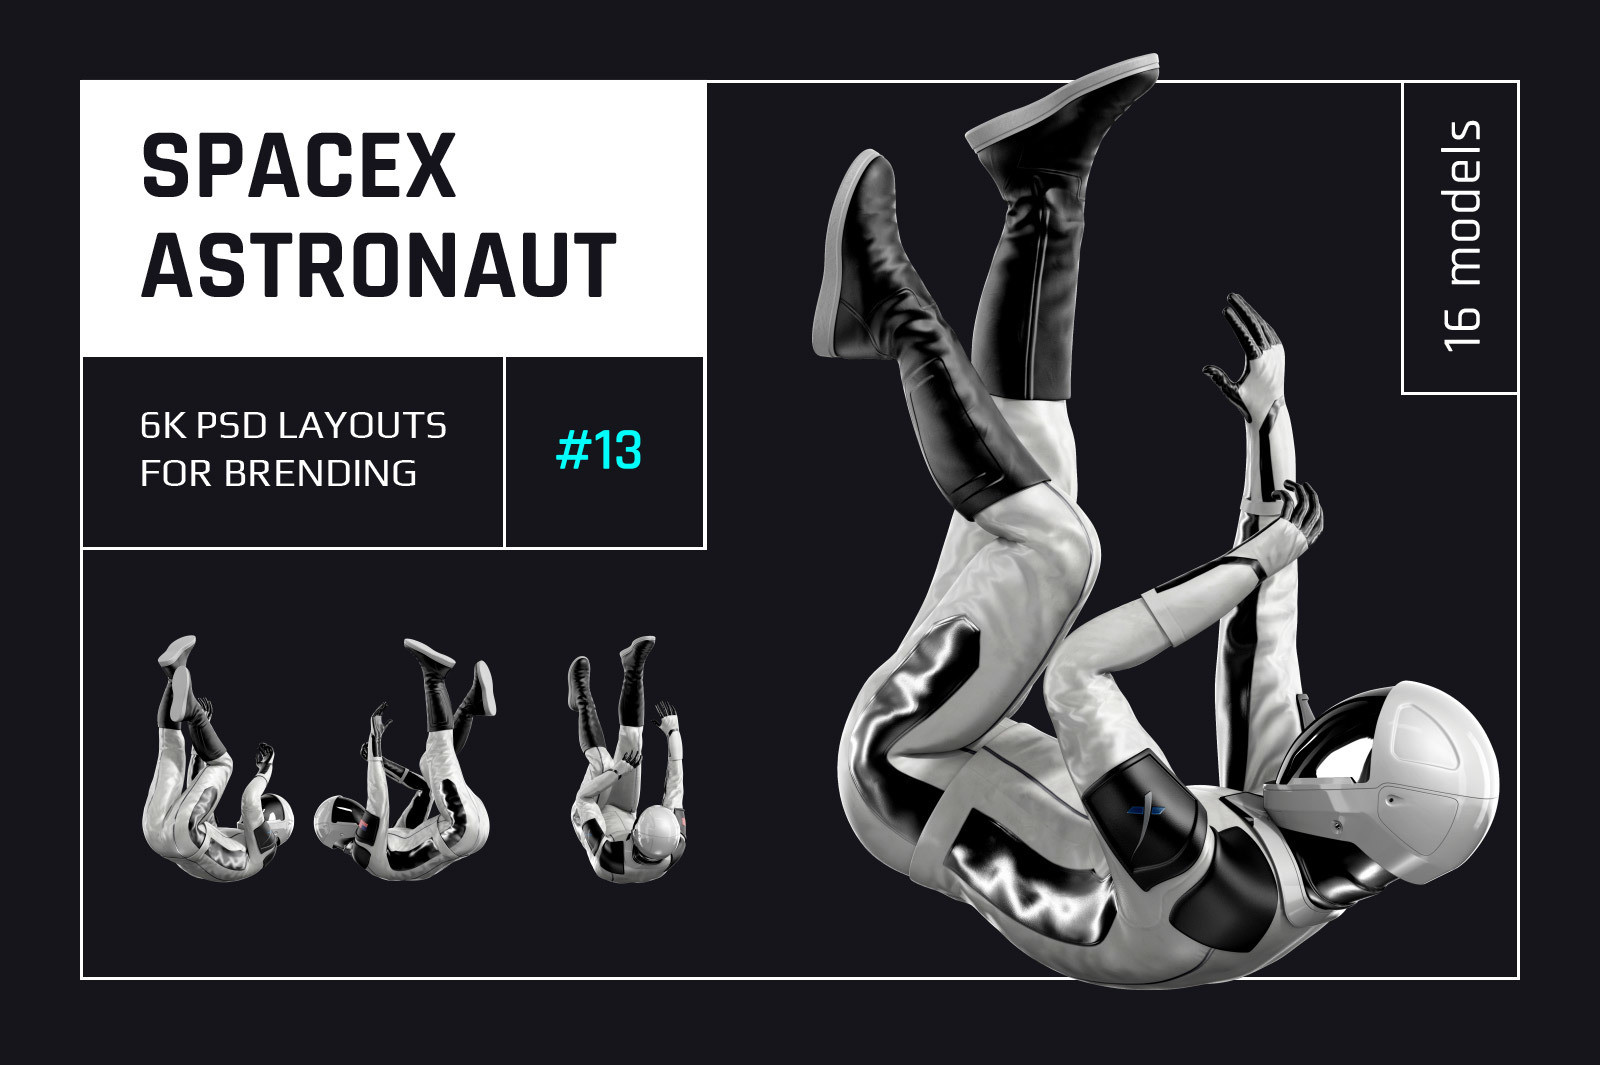 PSD Mockup 3D model SpaceX Astronaut #13